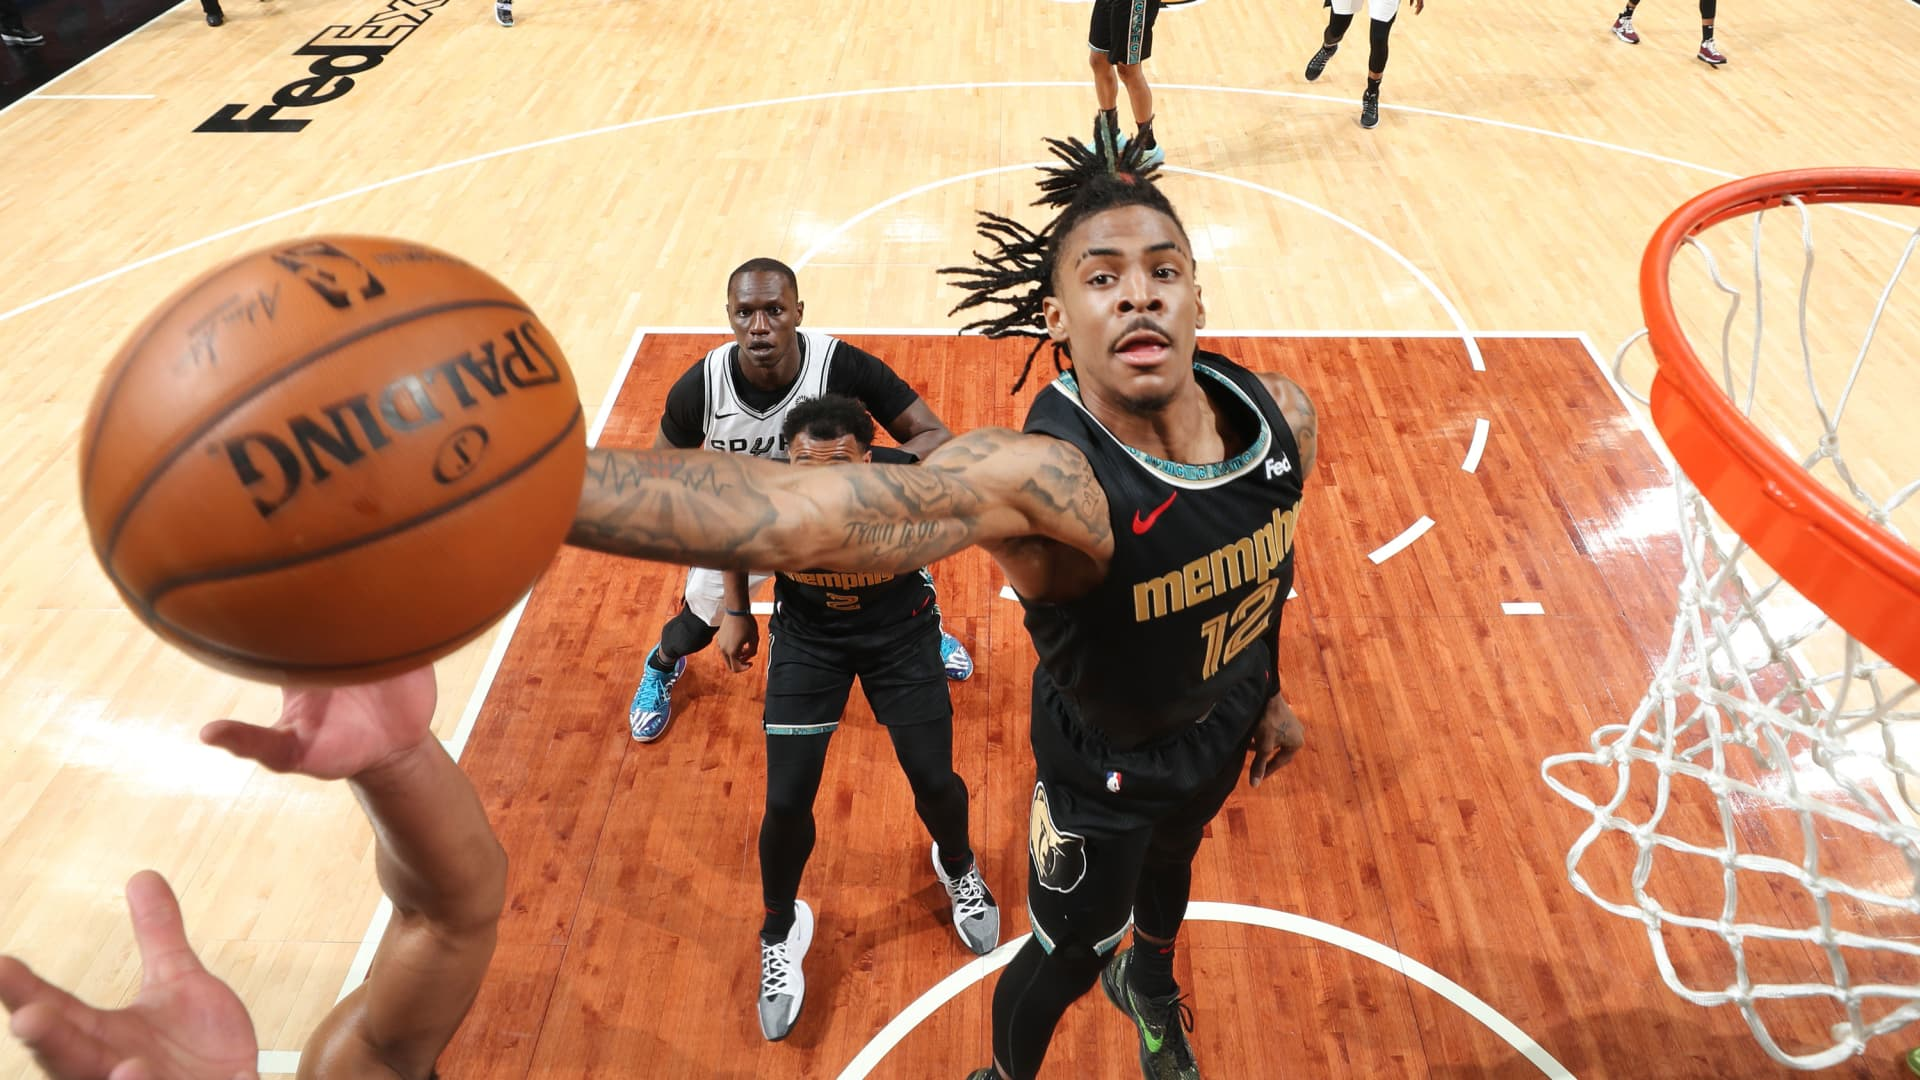 Ja Morant #12 of the Memphis Grizzlies rebounds the ball against the San Antonio Spurs during the 2021 NBA Play-In Tournament on May 19, 2021 at FedExForum in Memphis, Tennessee.